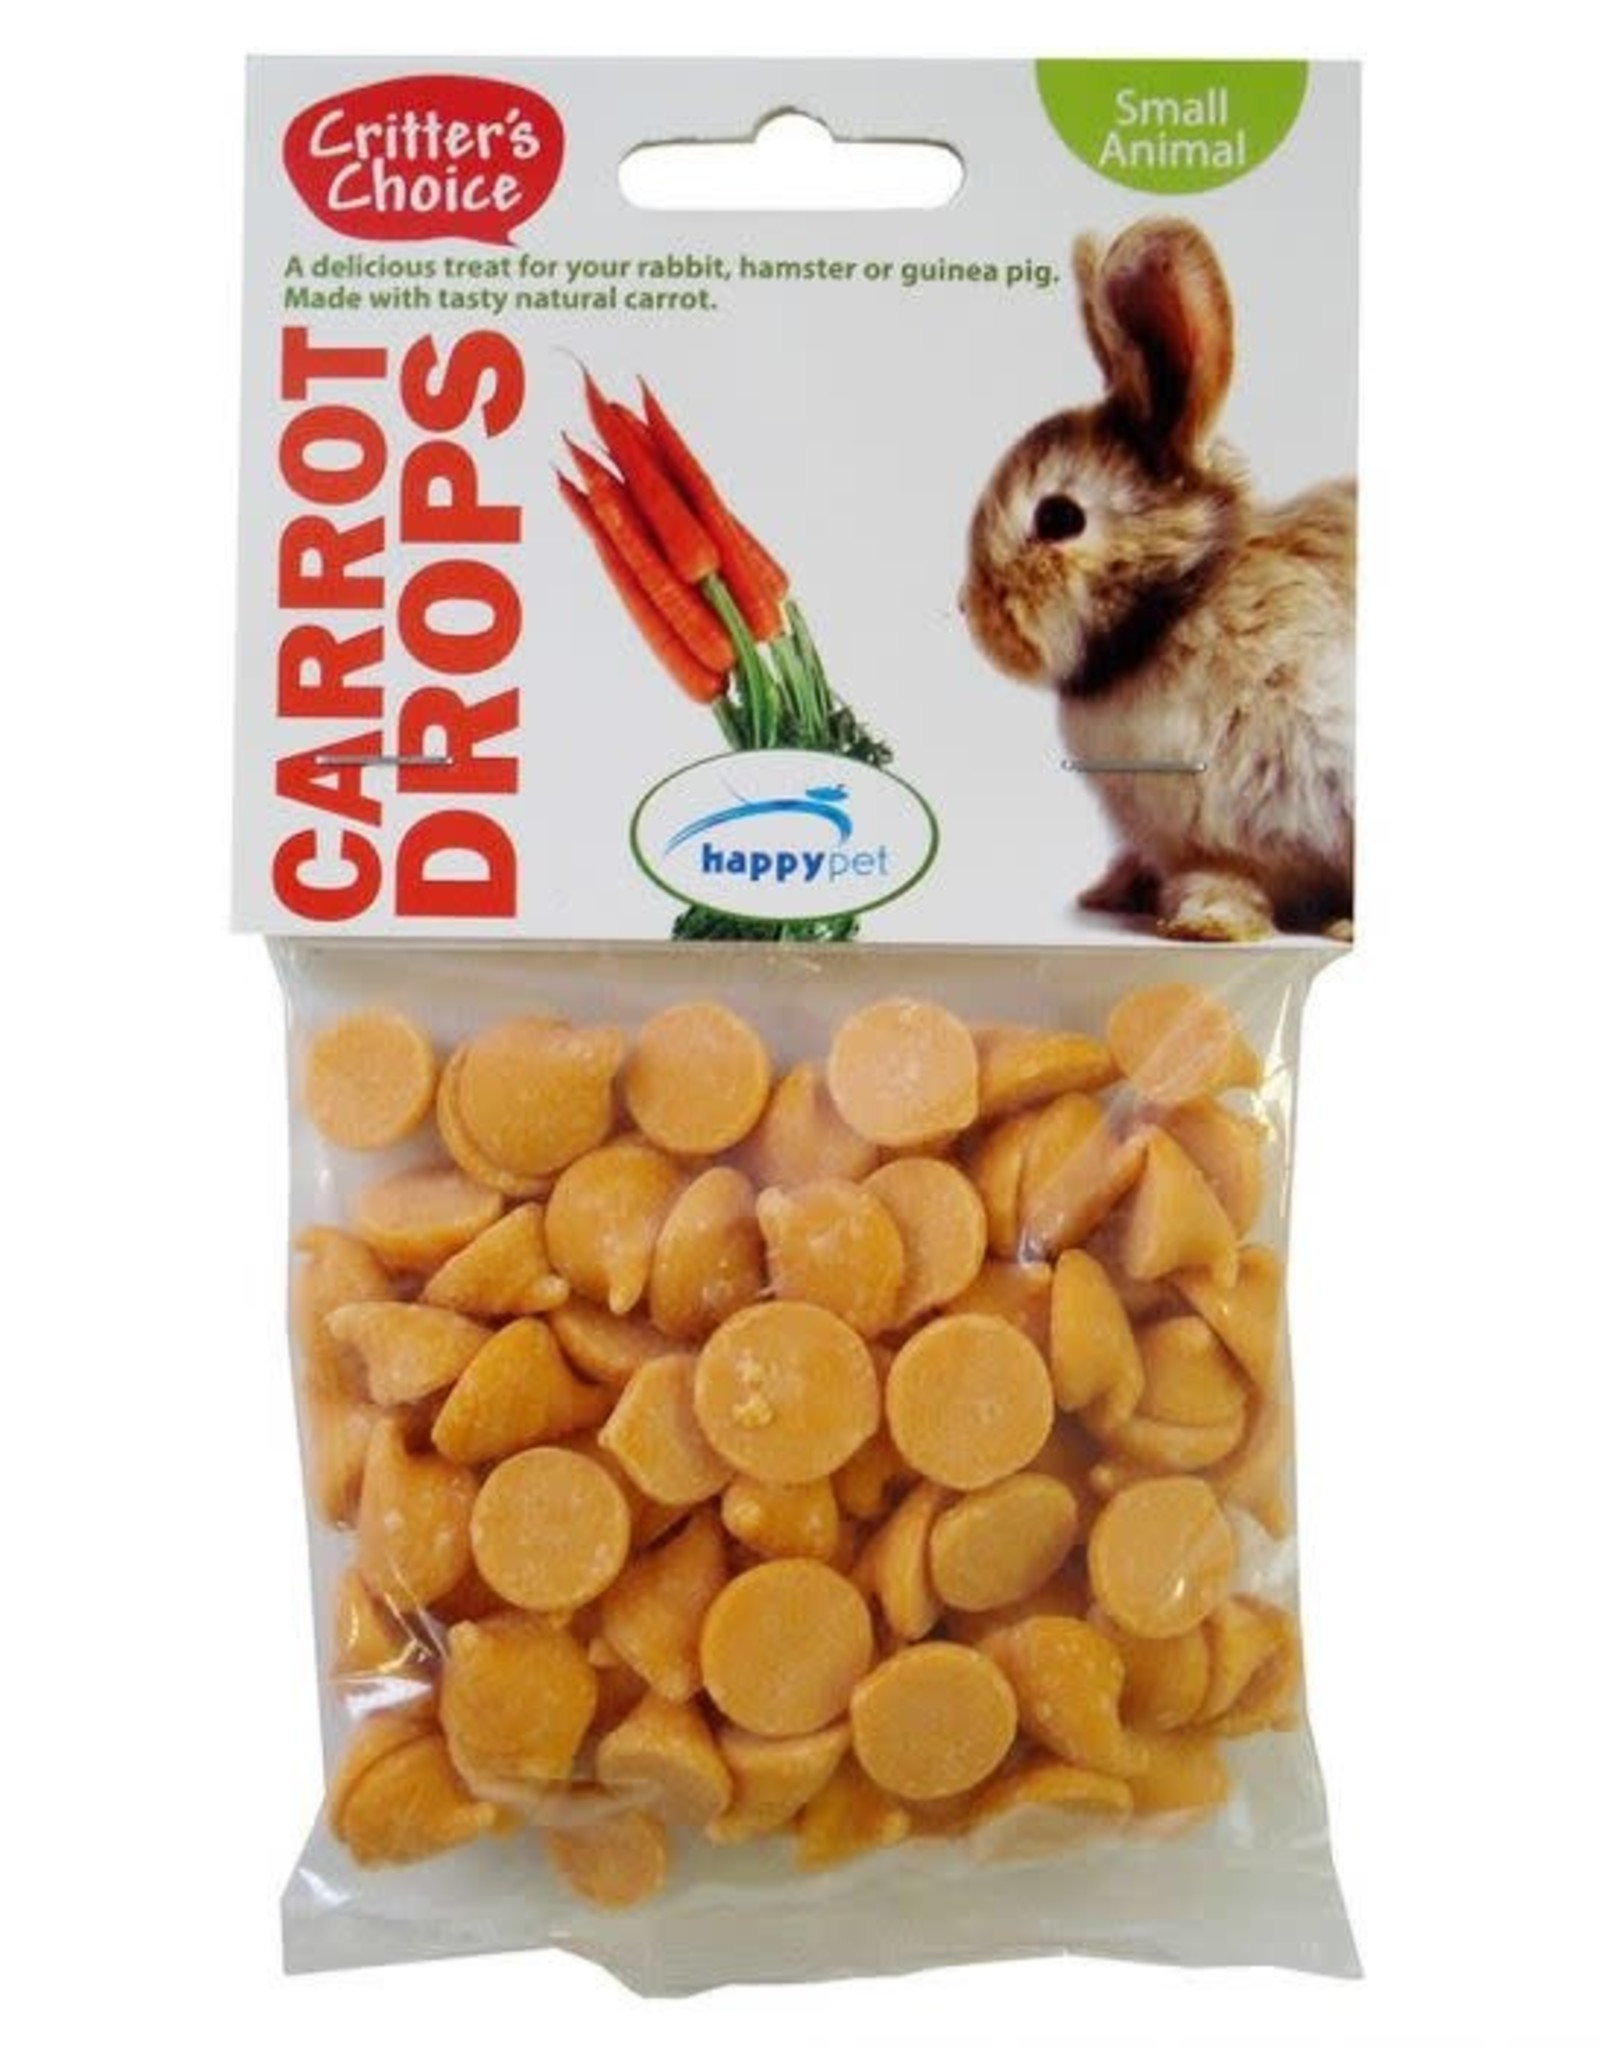 Happy Pet Critter's Choice Small Animal Carrot Drops 75g